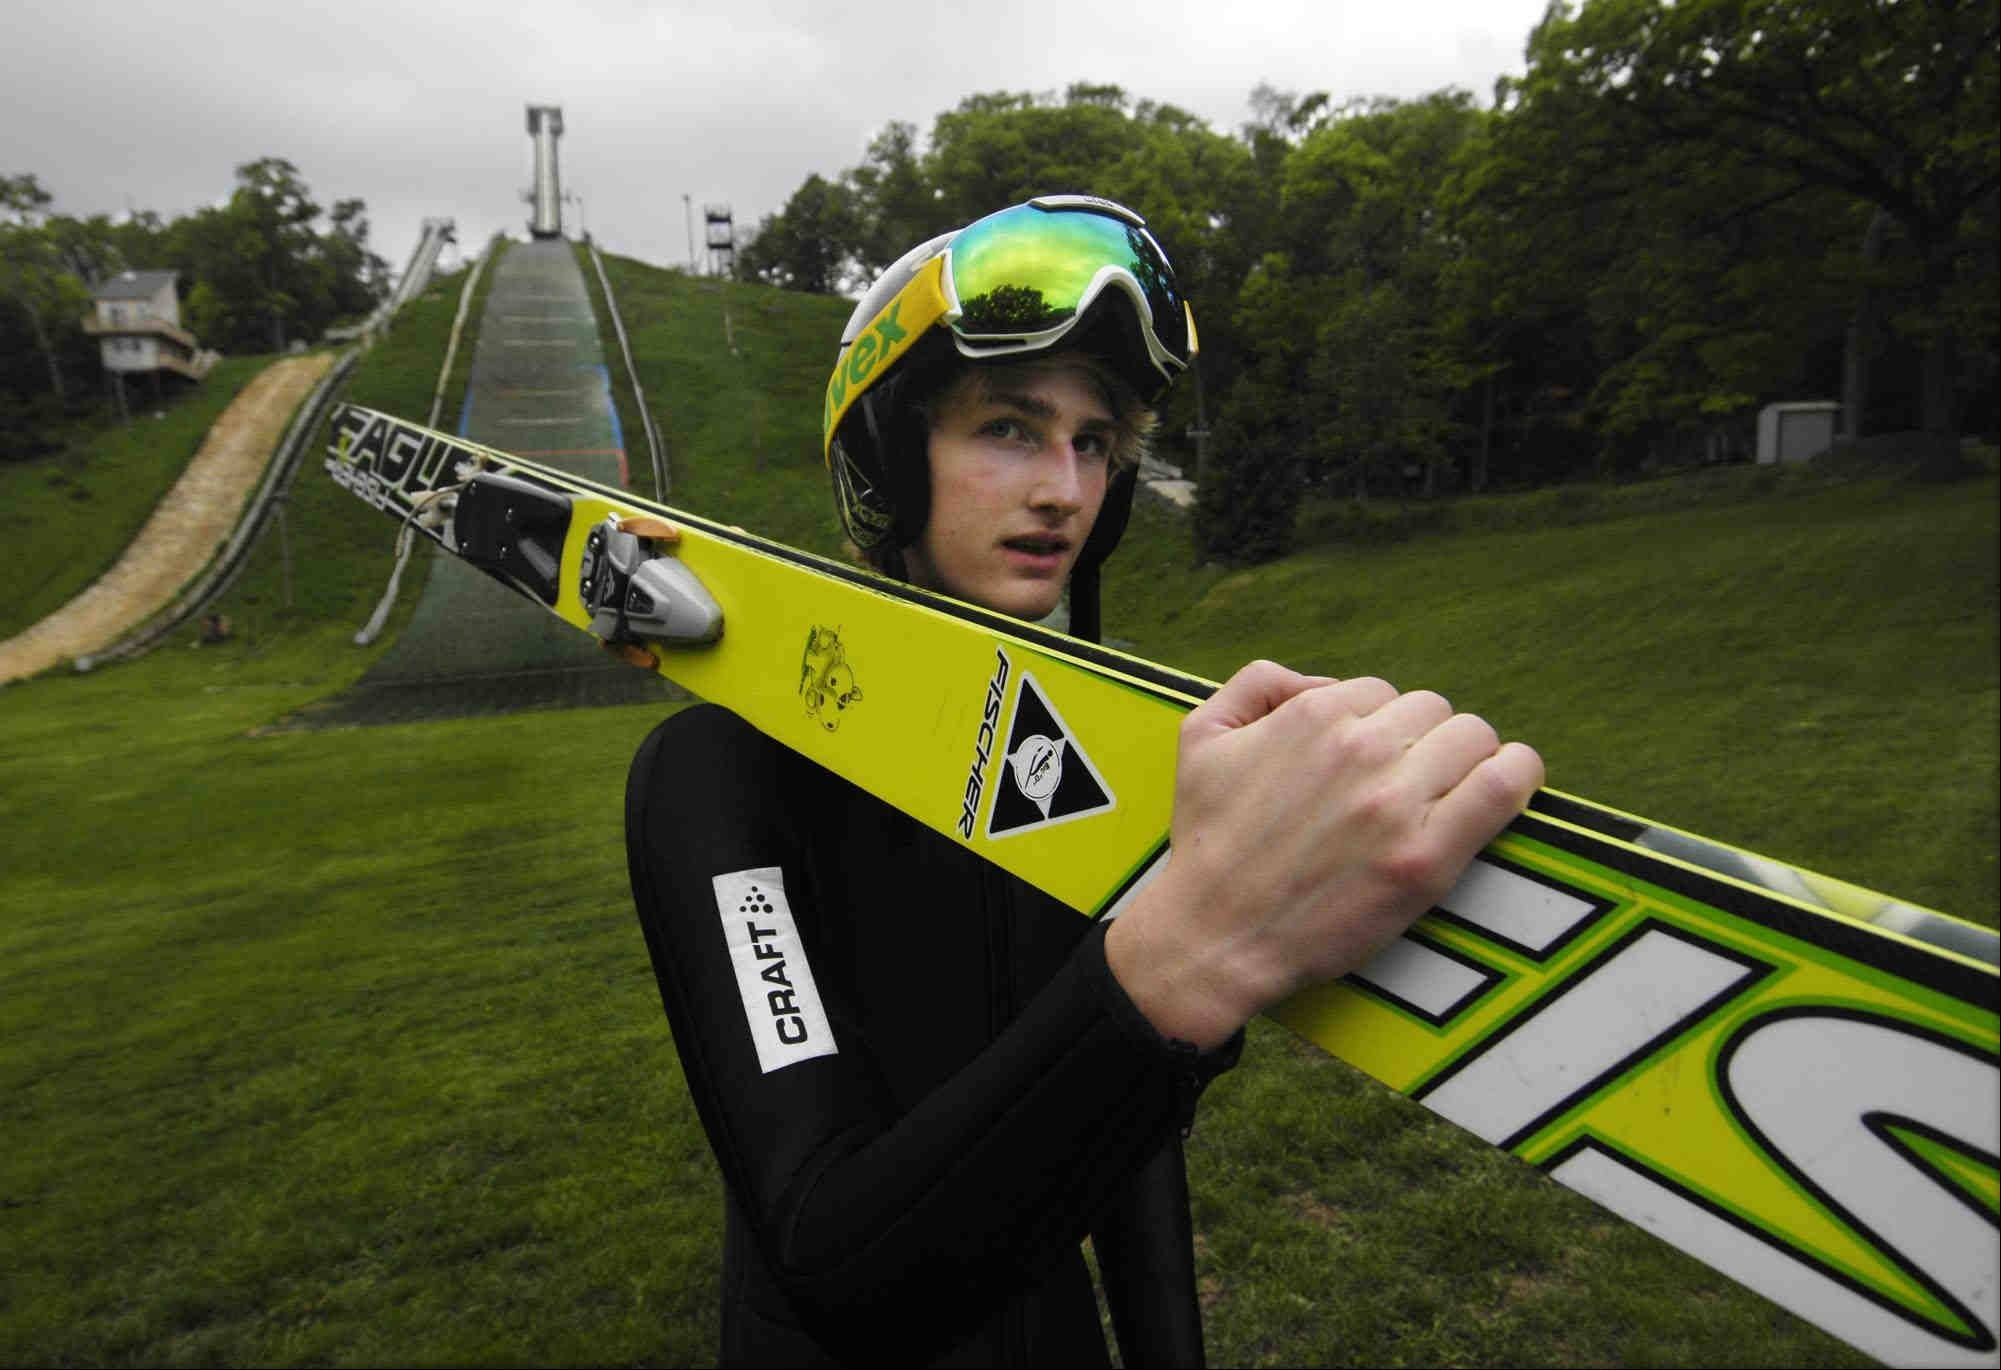 Kevin Bickner, 16, of Wauconda, has been named to the U.S. Ski Jumping National Development Team and will train in Utah. He has won the Junior National Ski Jumping Championship the last two years.